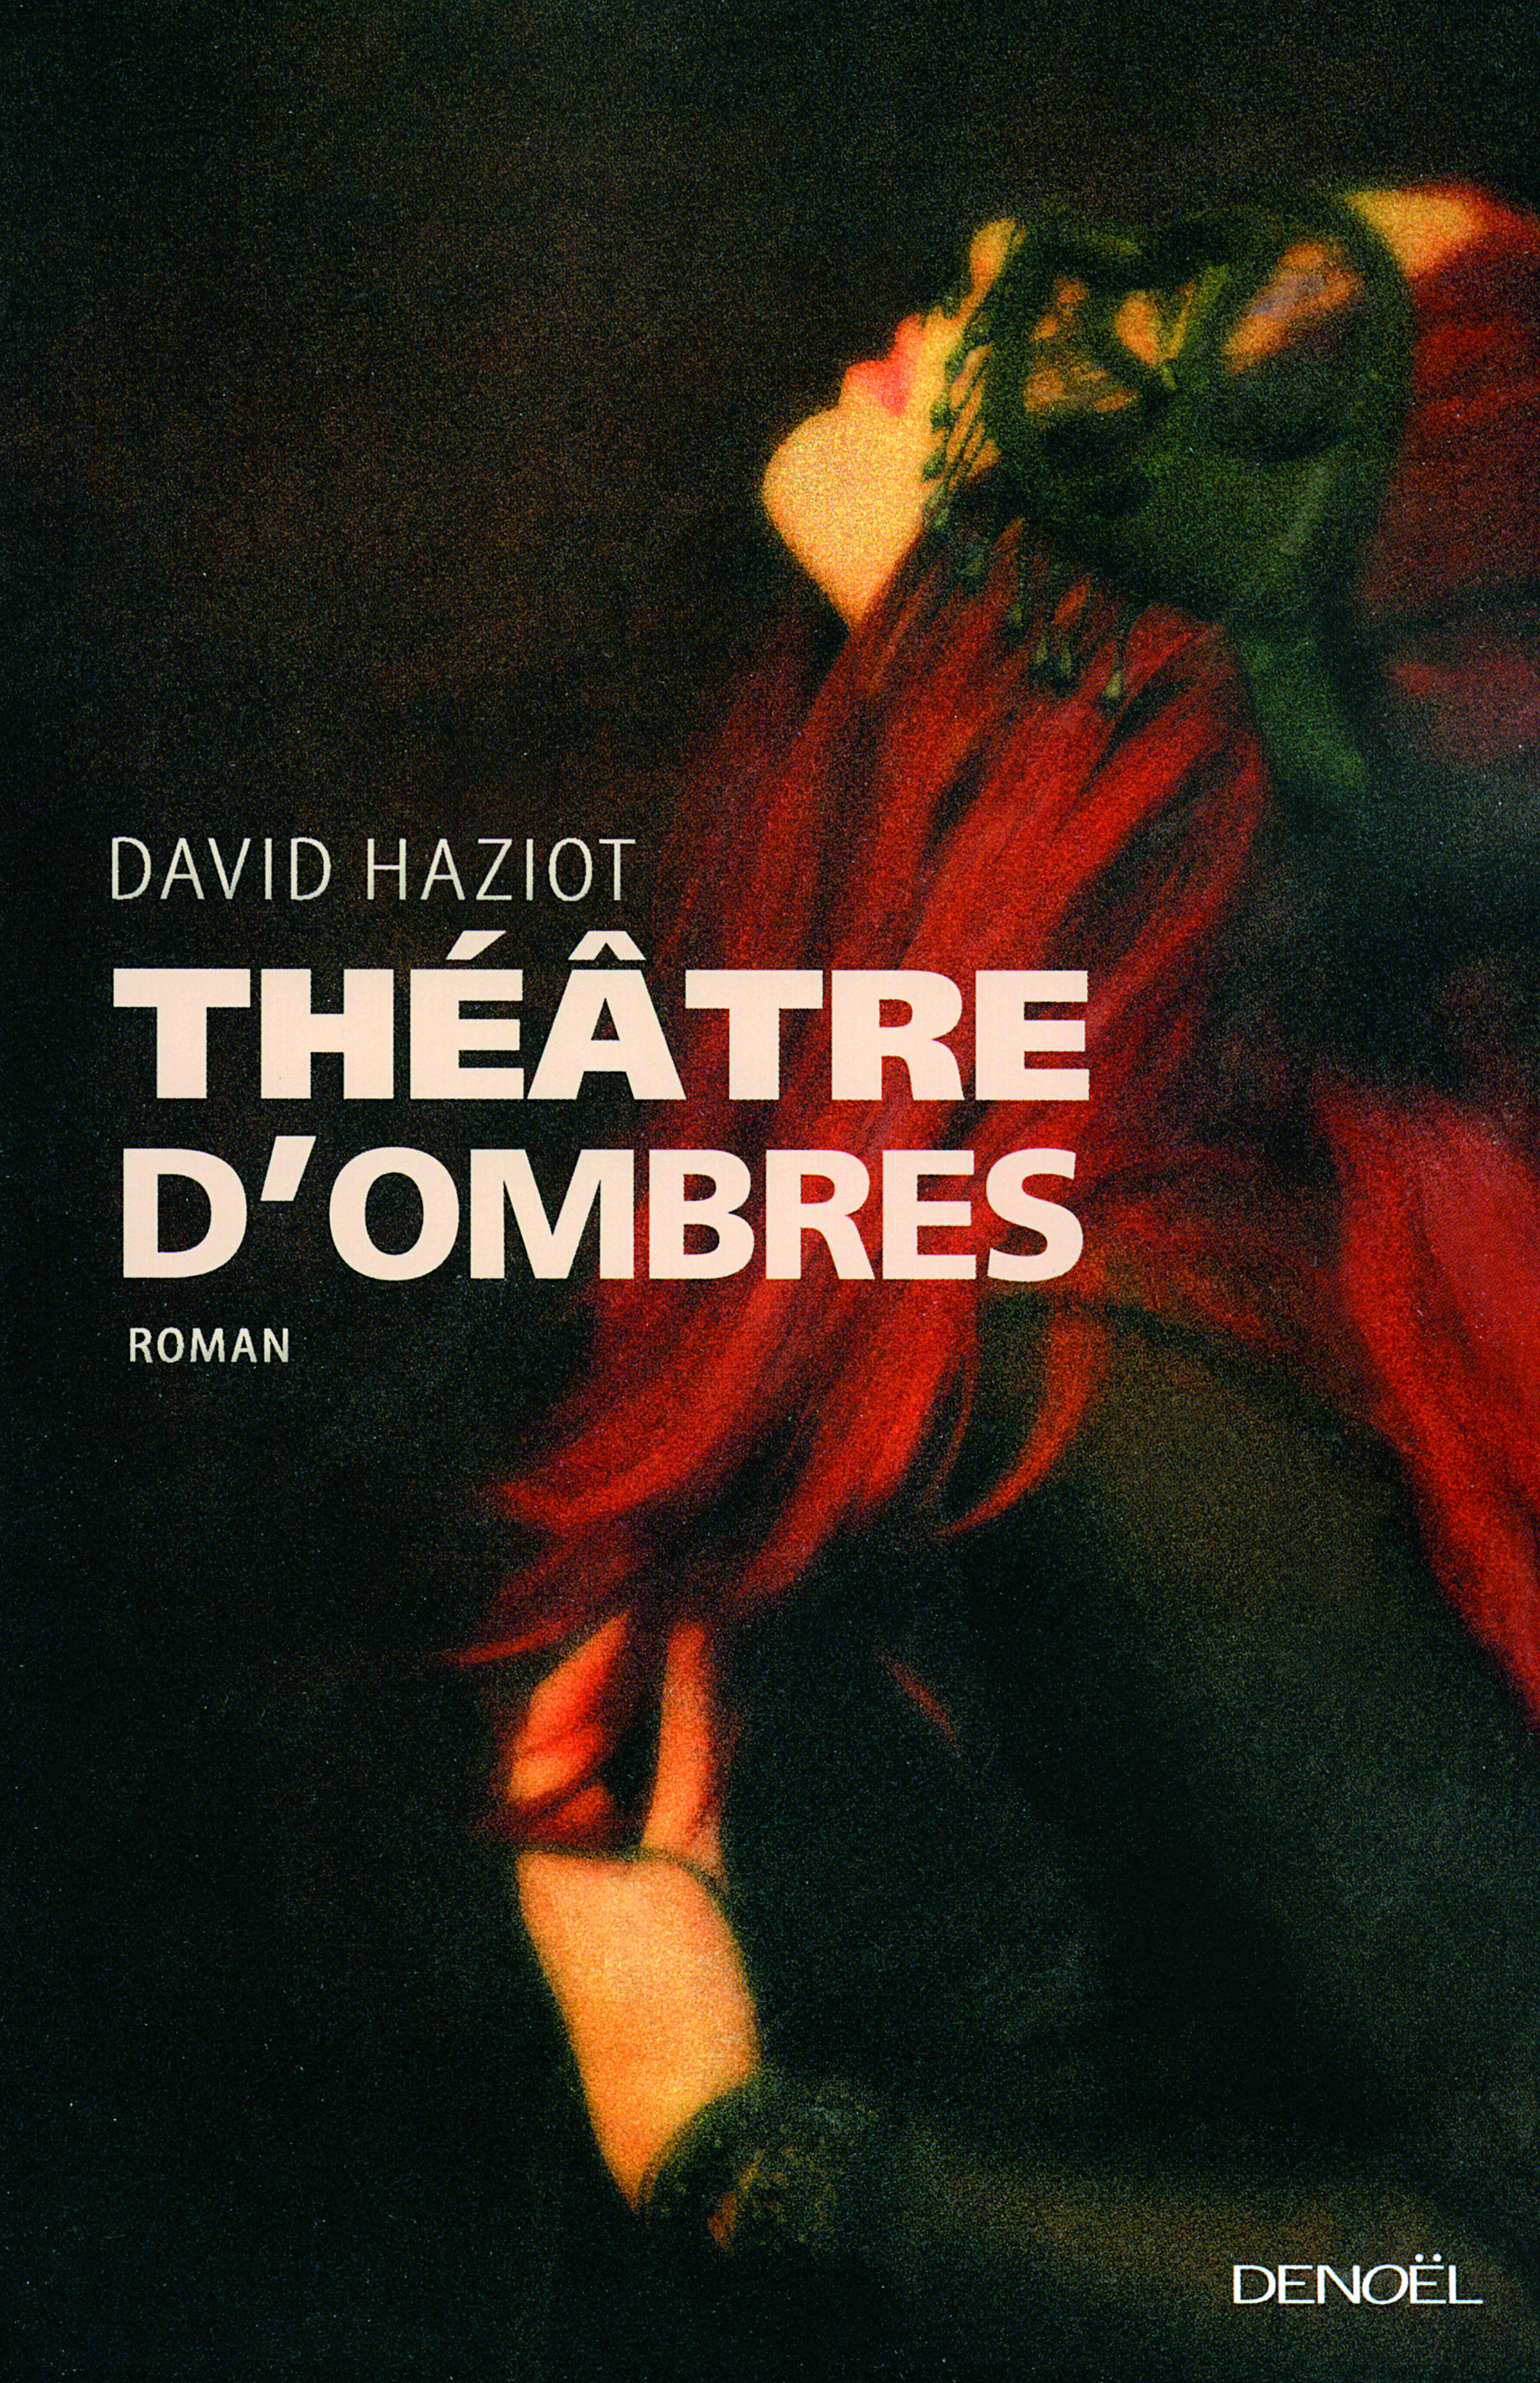 THEATRE D'OMBRES